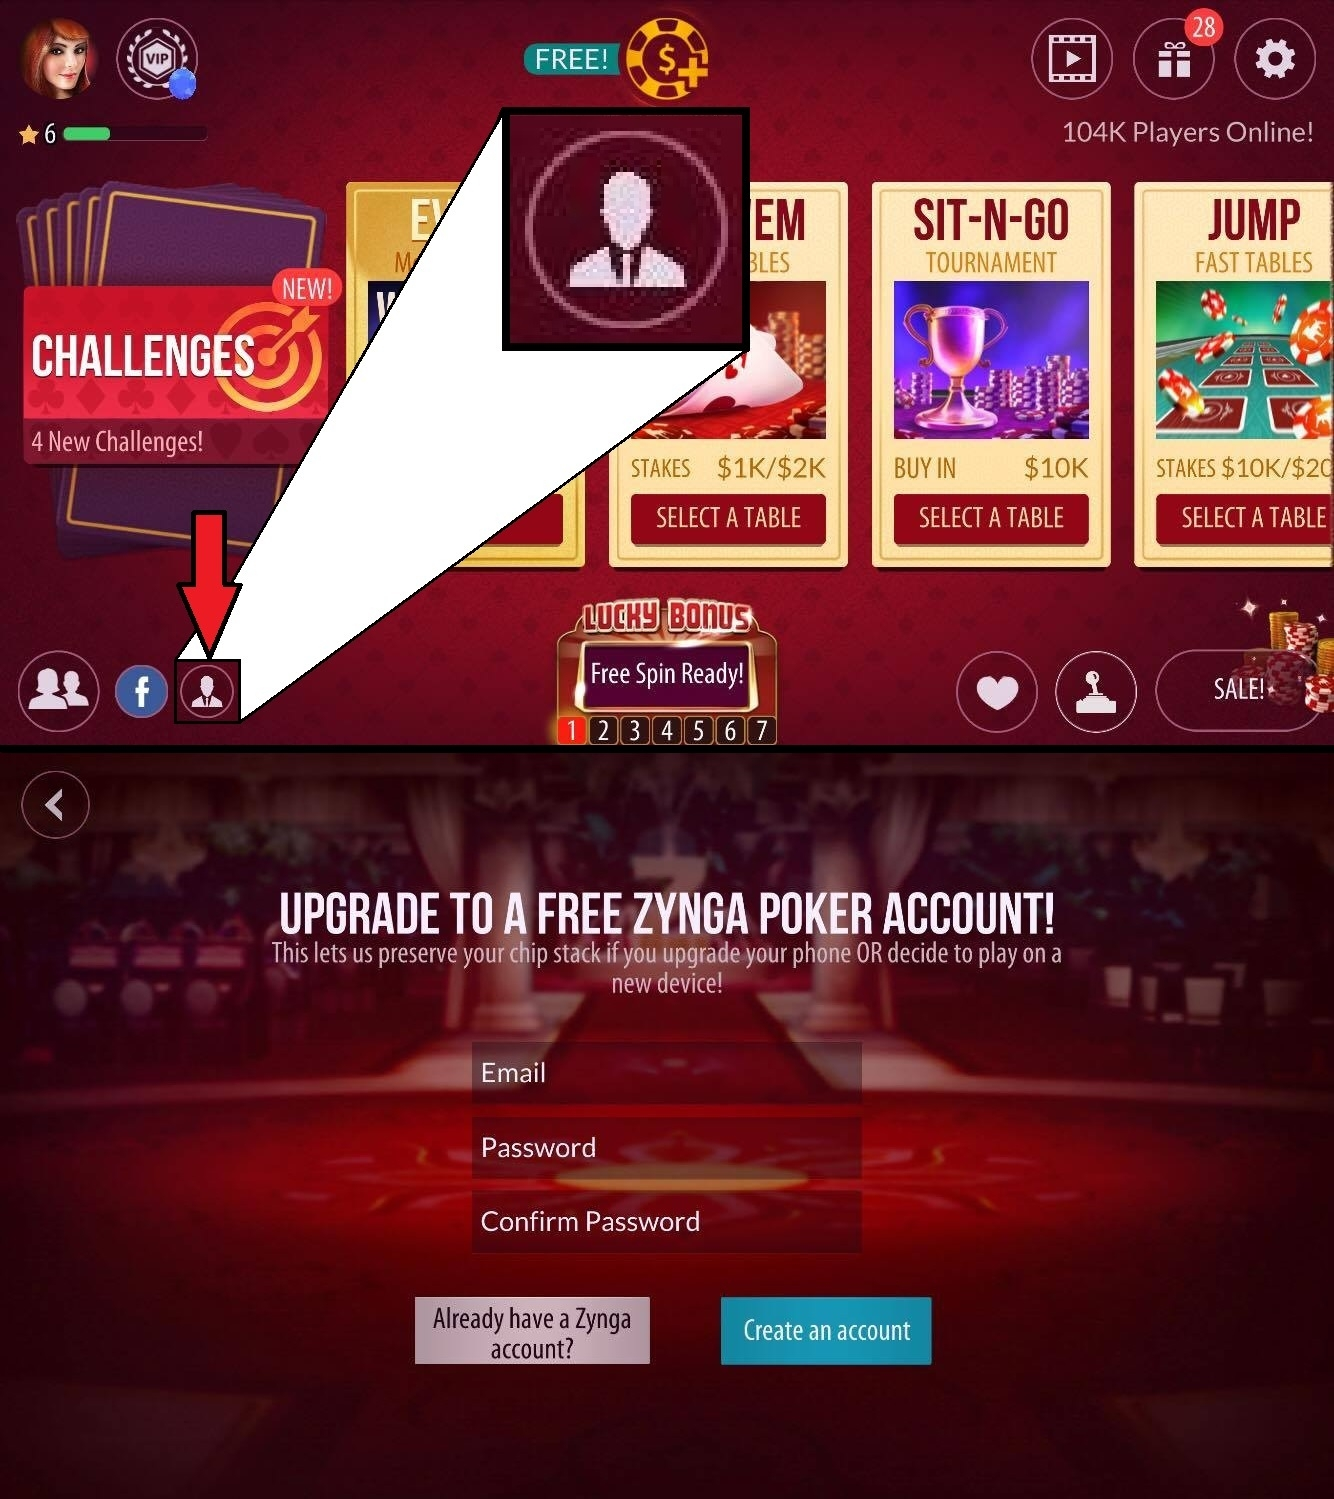 Zynga poker account sign up poker clothing